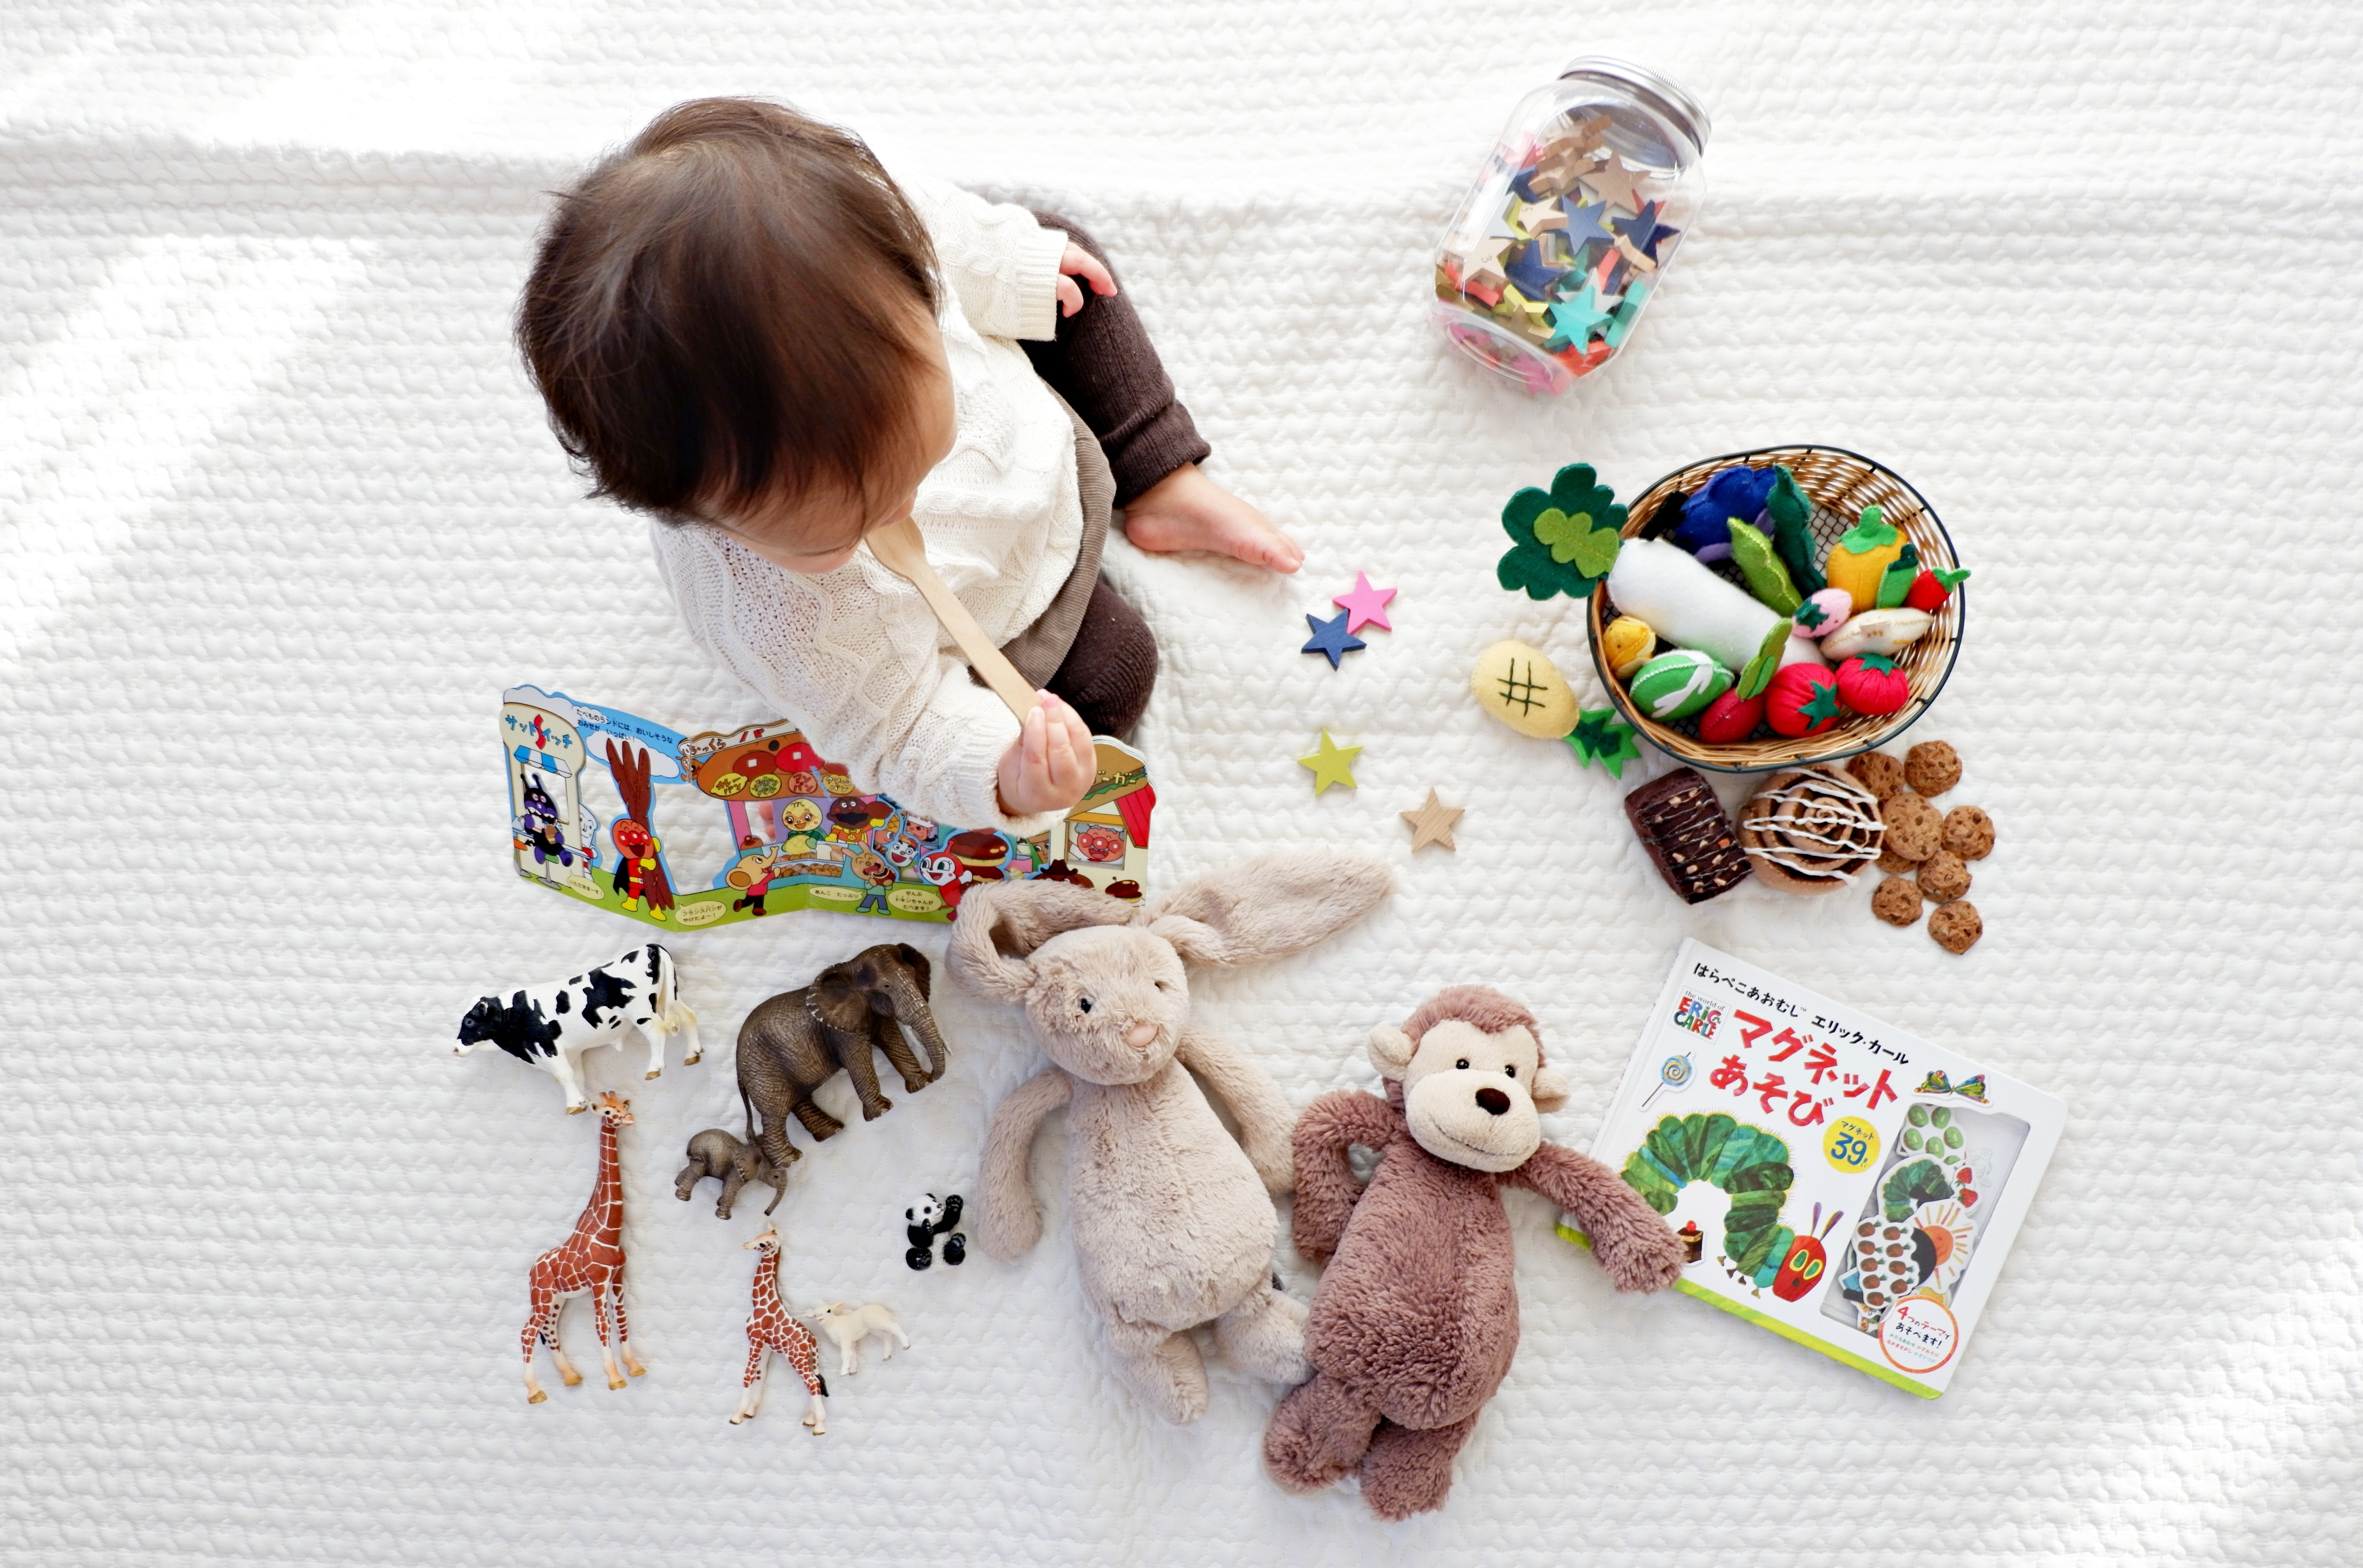 baby sitting with toys